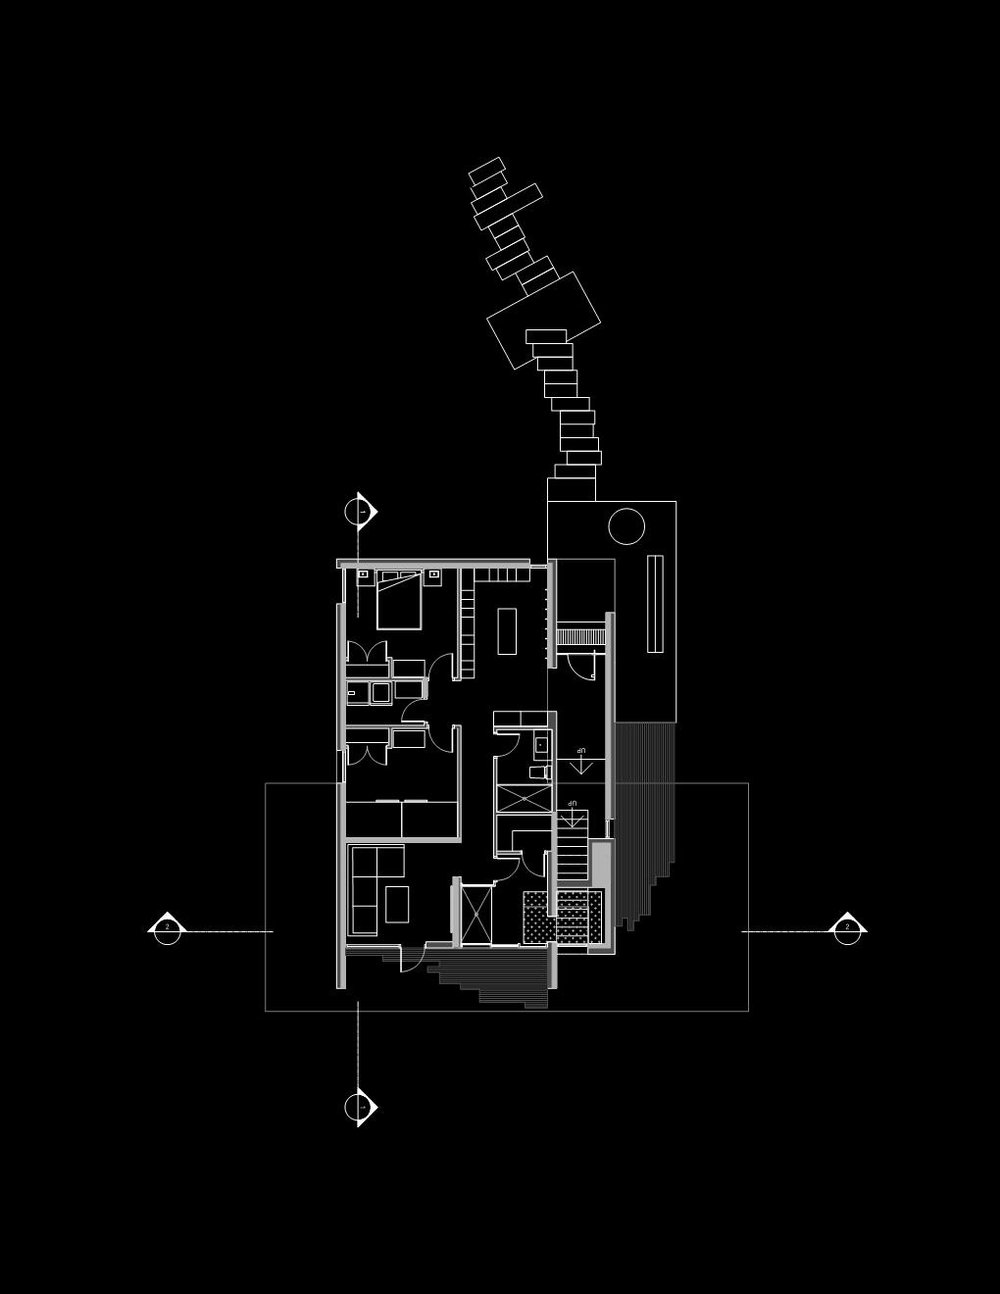 McKinley Burkart_Whistler_Plan_inverted.jpg